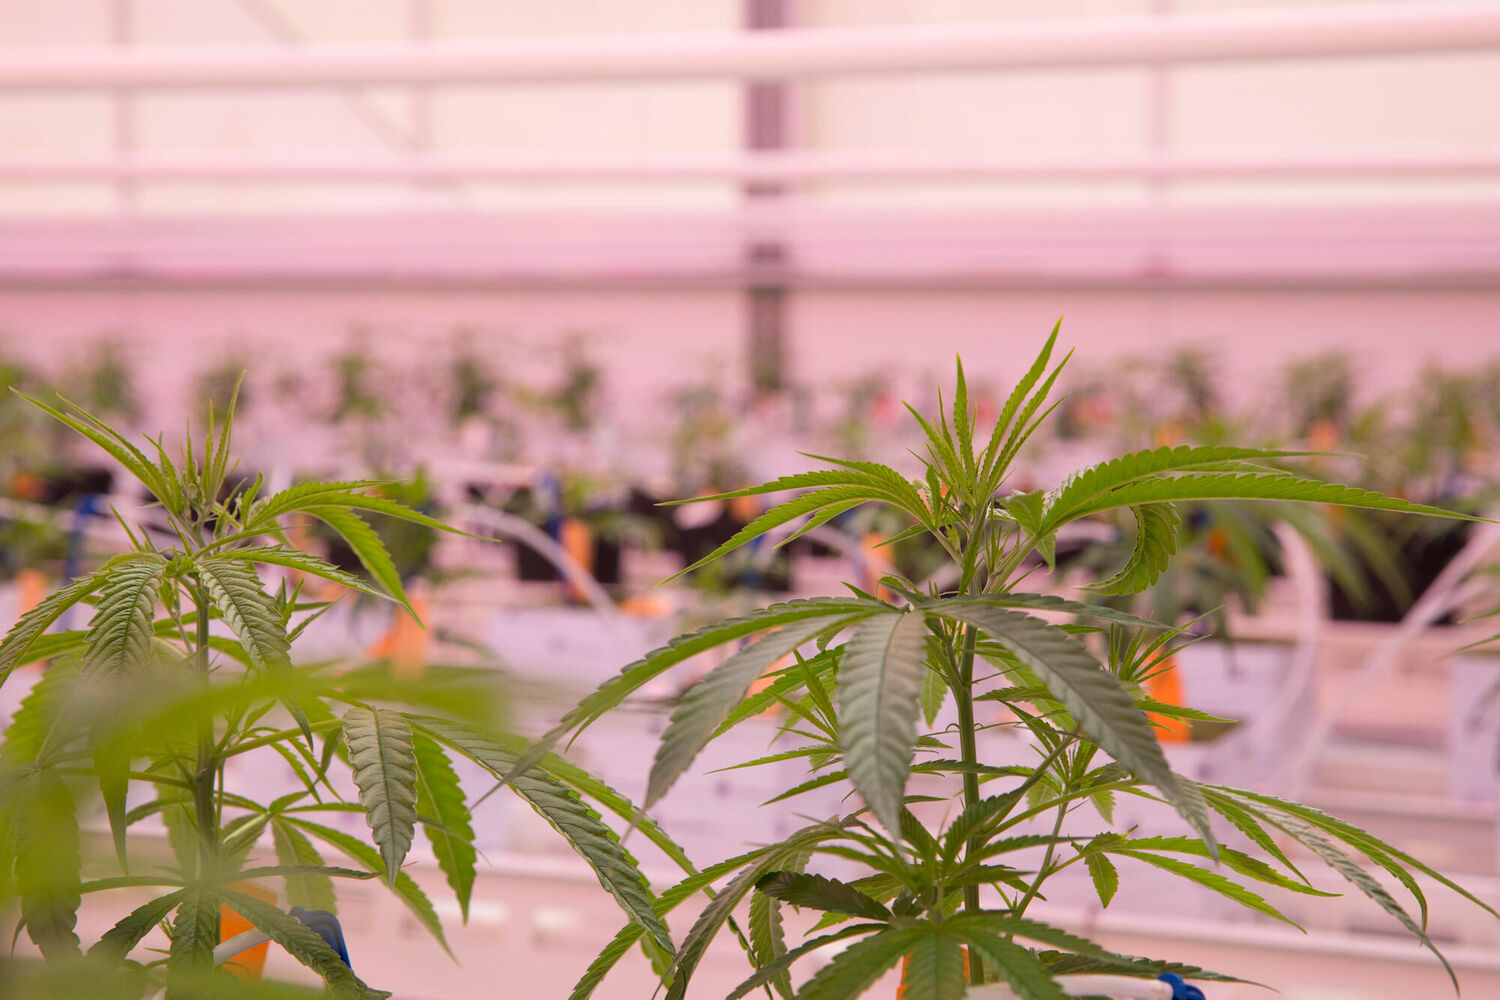 Oreon supplies LED to medical cannabis grower Medican in Denmark